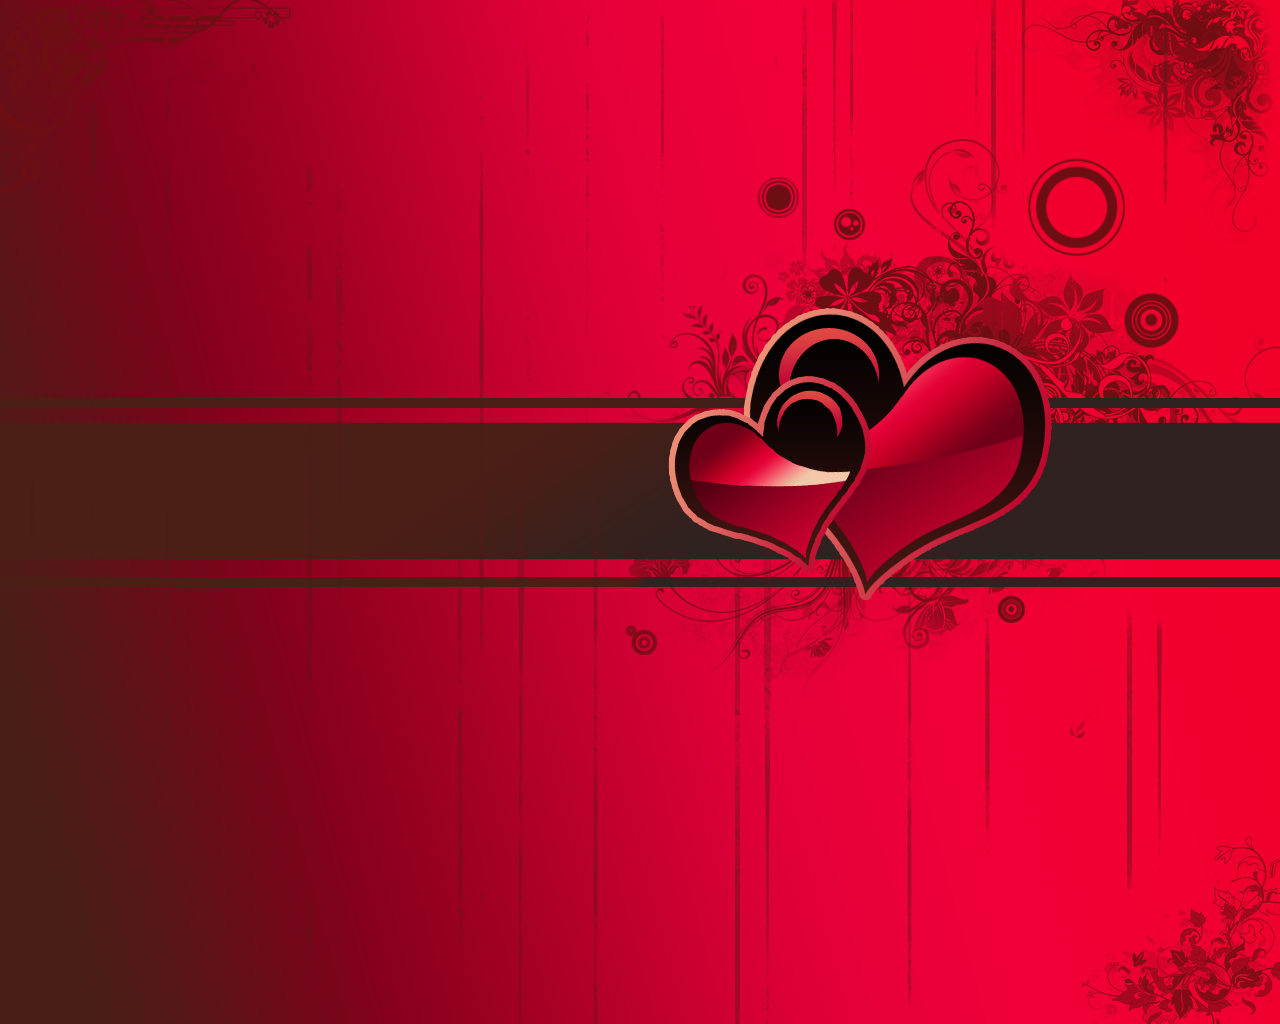 Religious Wallpapers Free Downloads-*Radical Pagan Philosopher*: Valentine Wallpaper